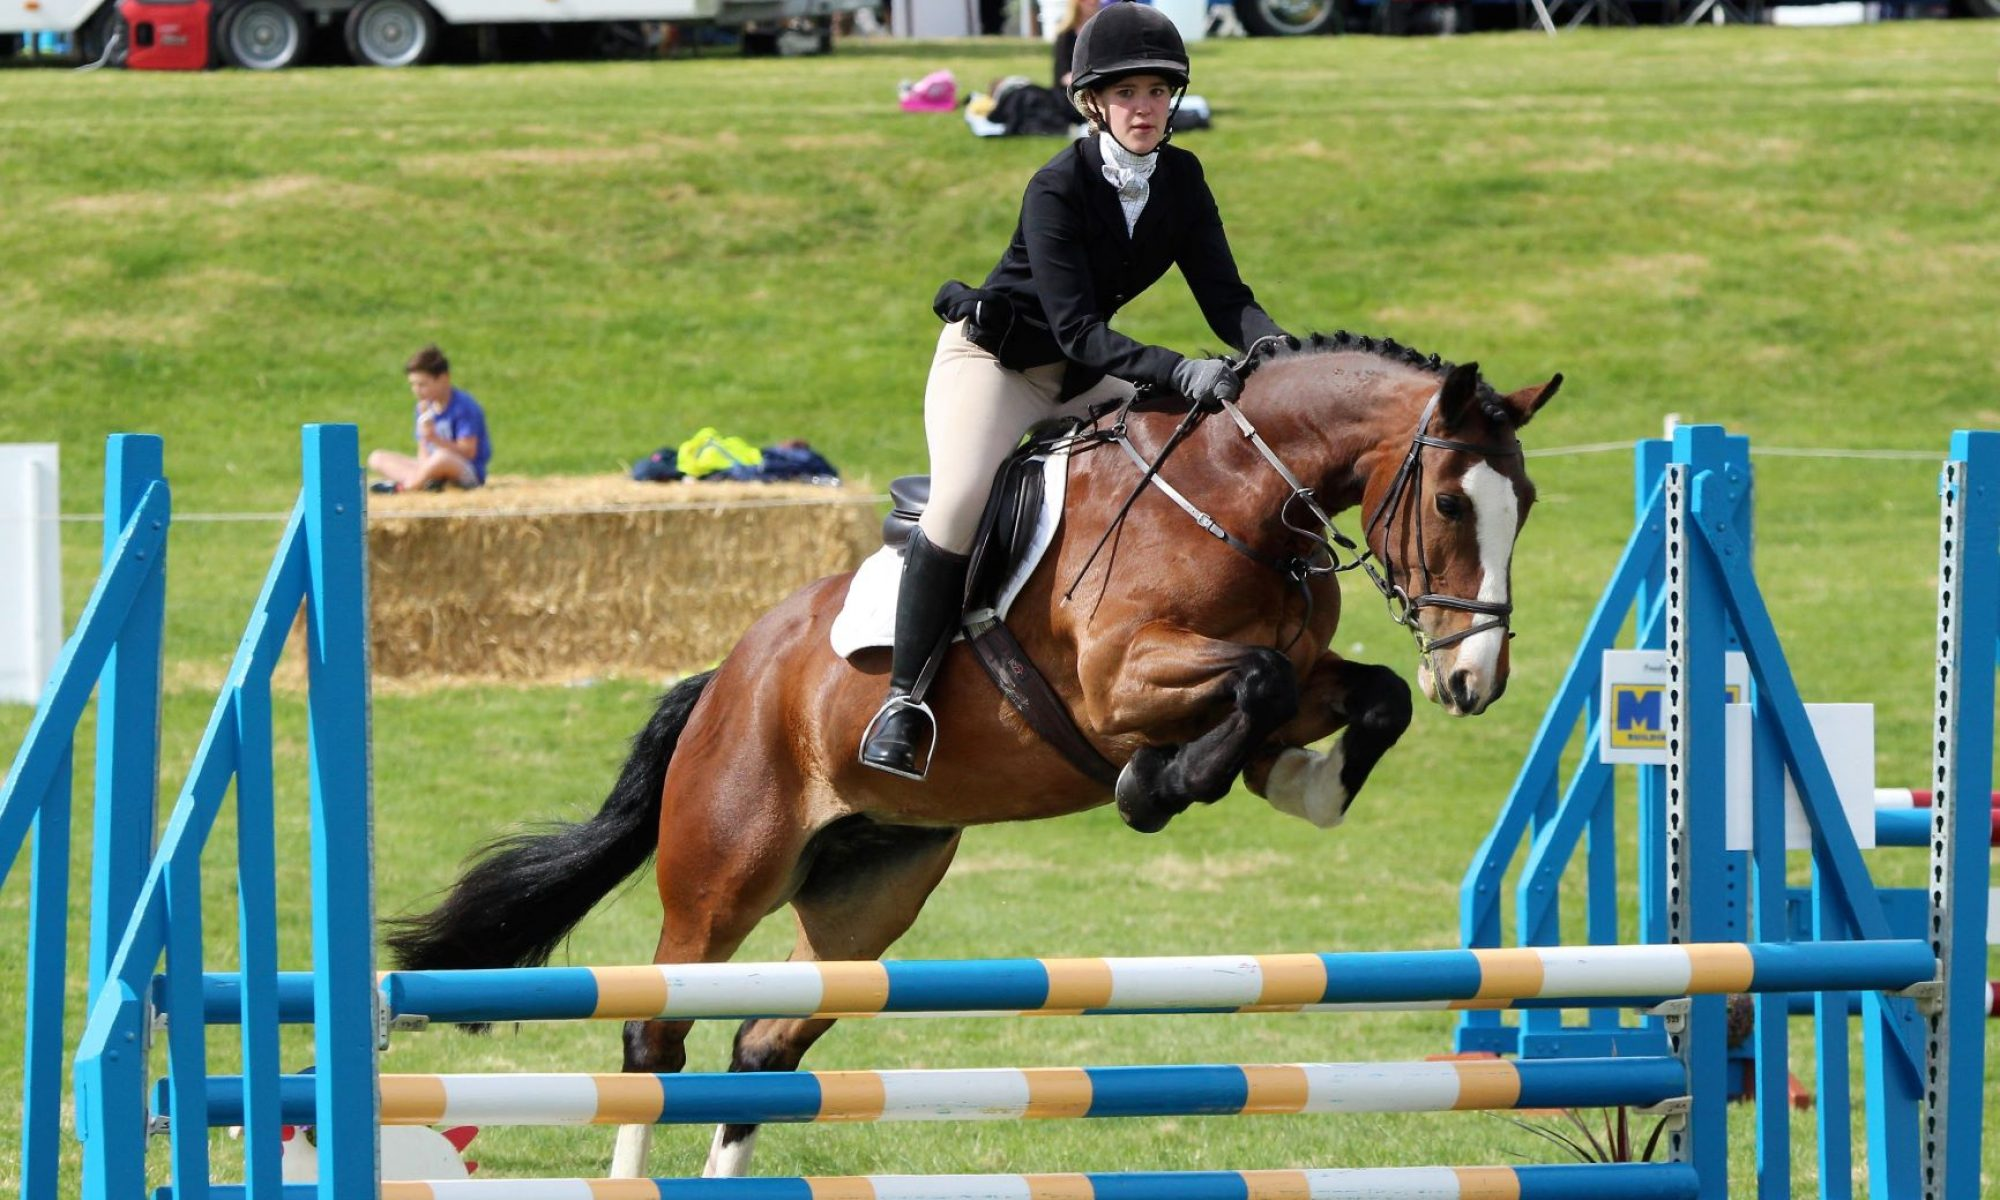 Emily Scott-Bromly's Journey to Becoming a Vet